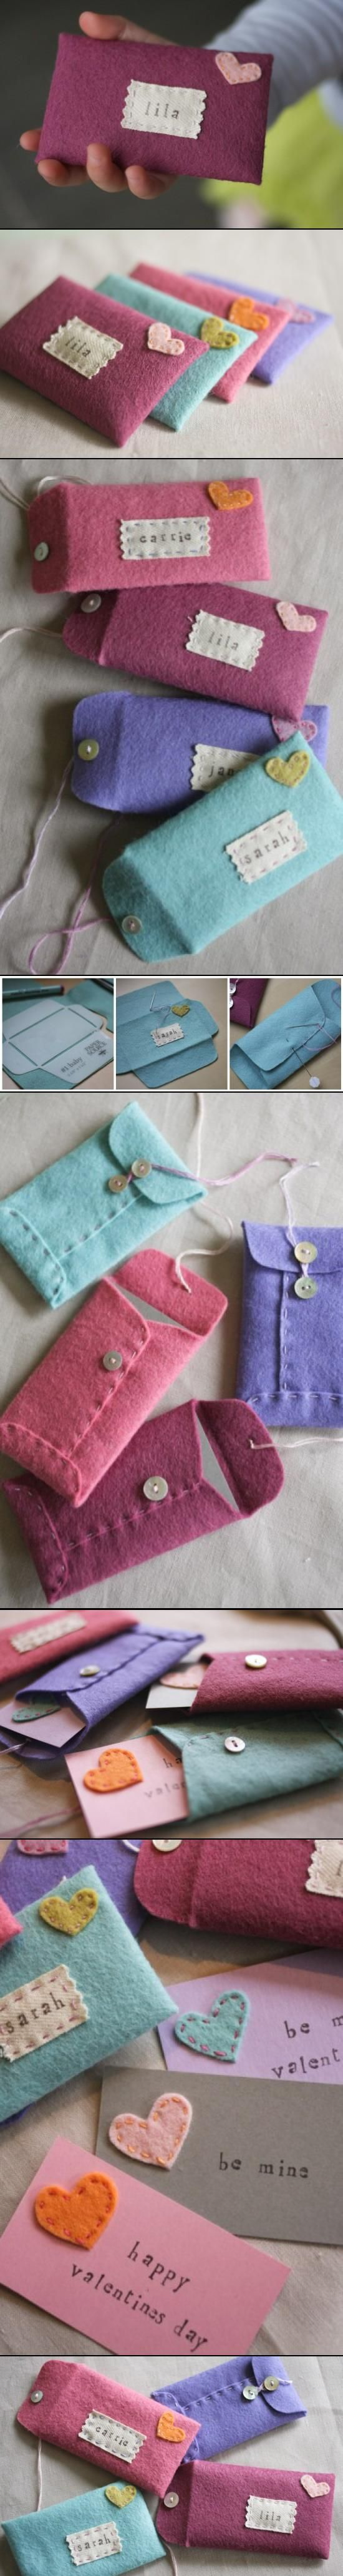 pretty envelopes of wooly felt